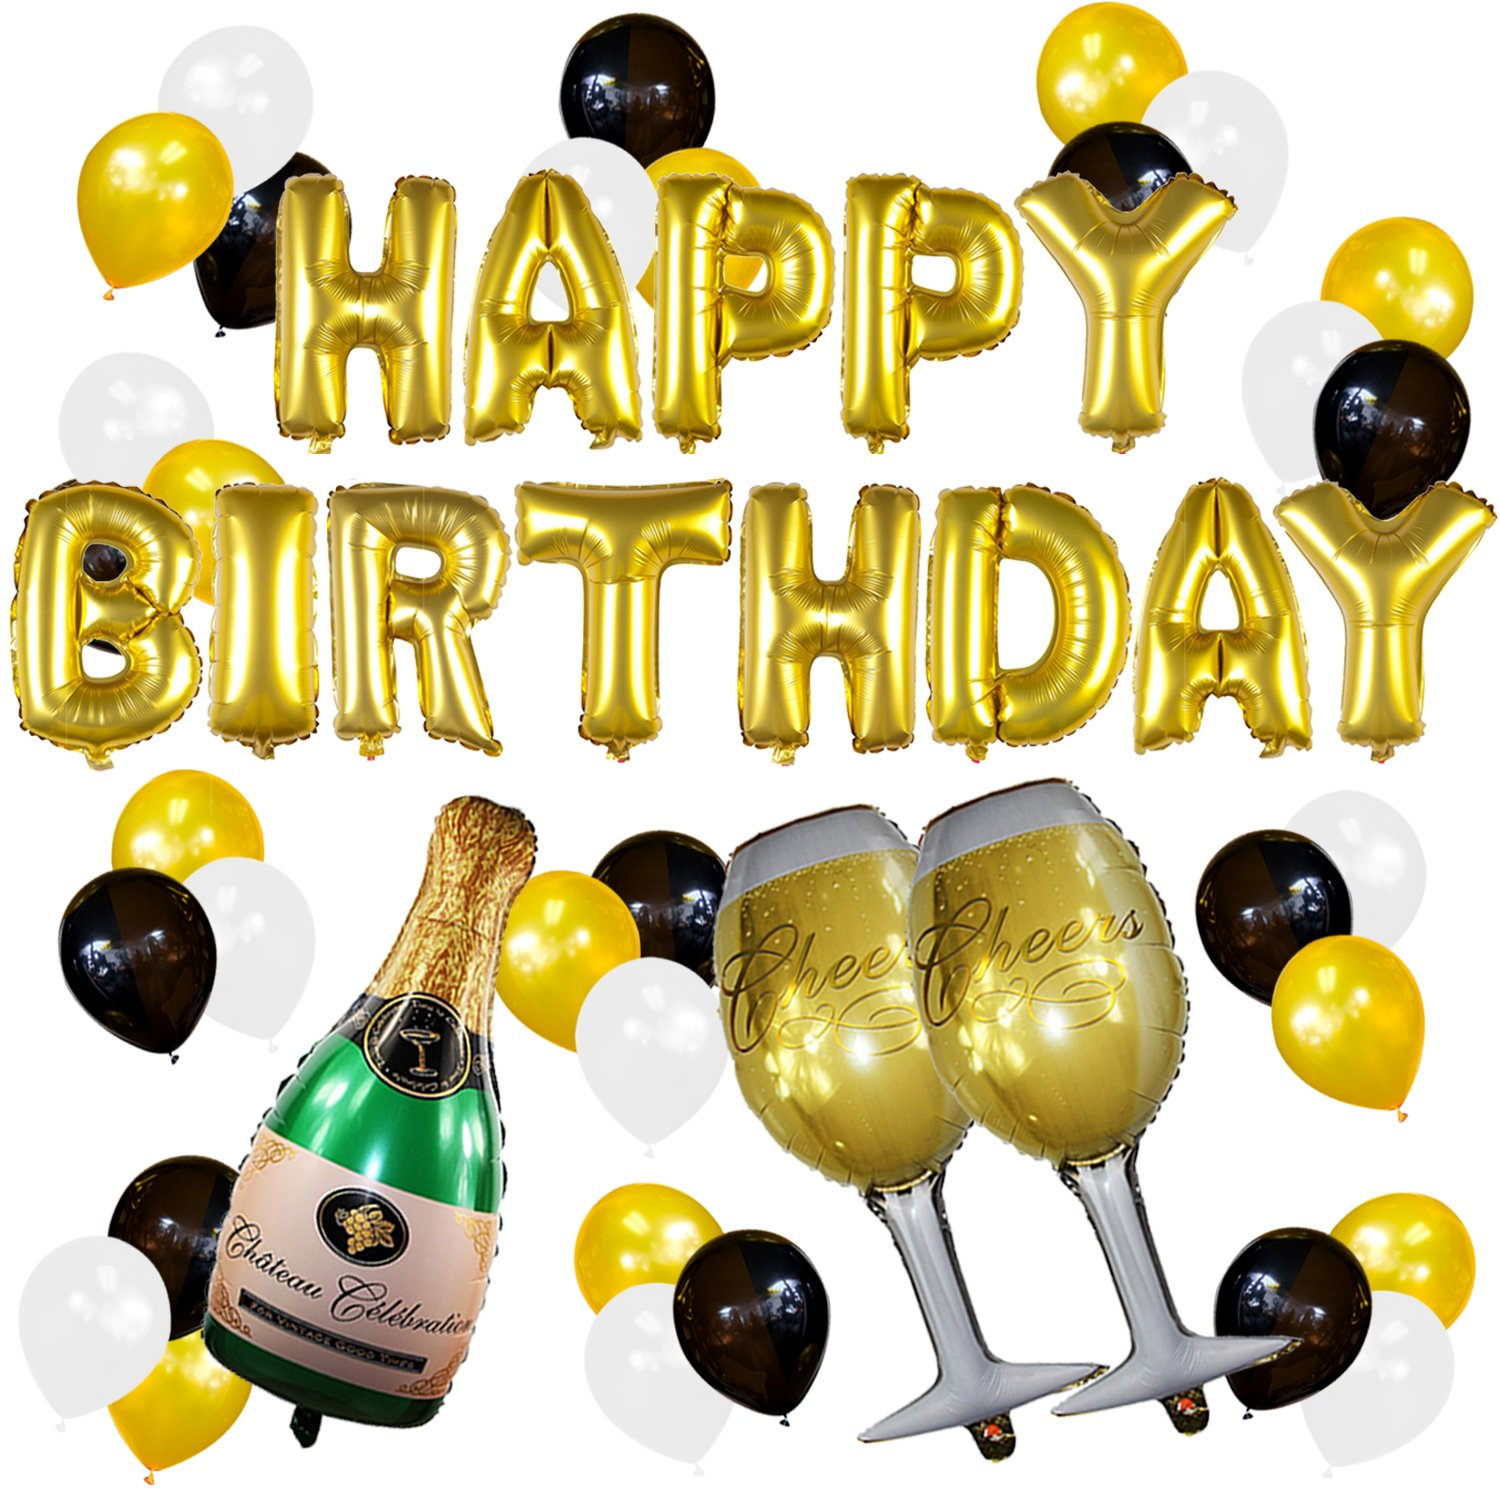 Sterling James Co. Gold Birthday and Champagne Balloon Set - Birthday Party Decorations - 21st - 30th - 40th - 50th - Funny Birthday Party Supplies Sterling James Company